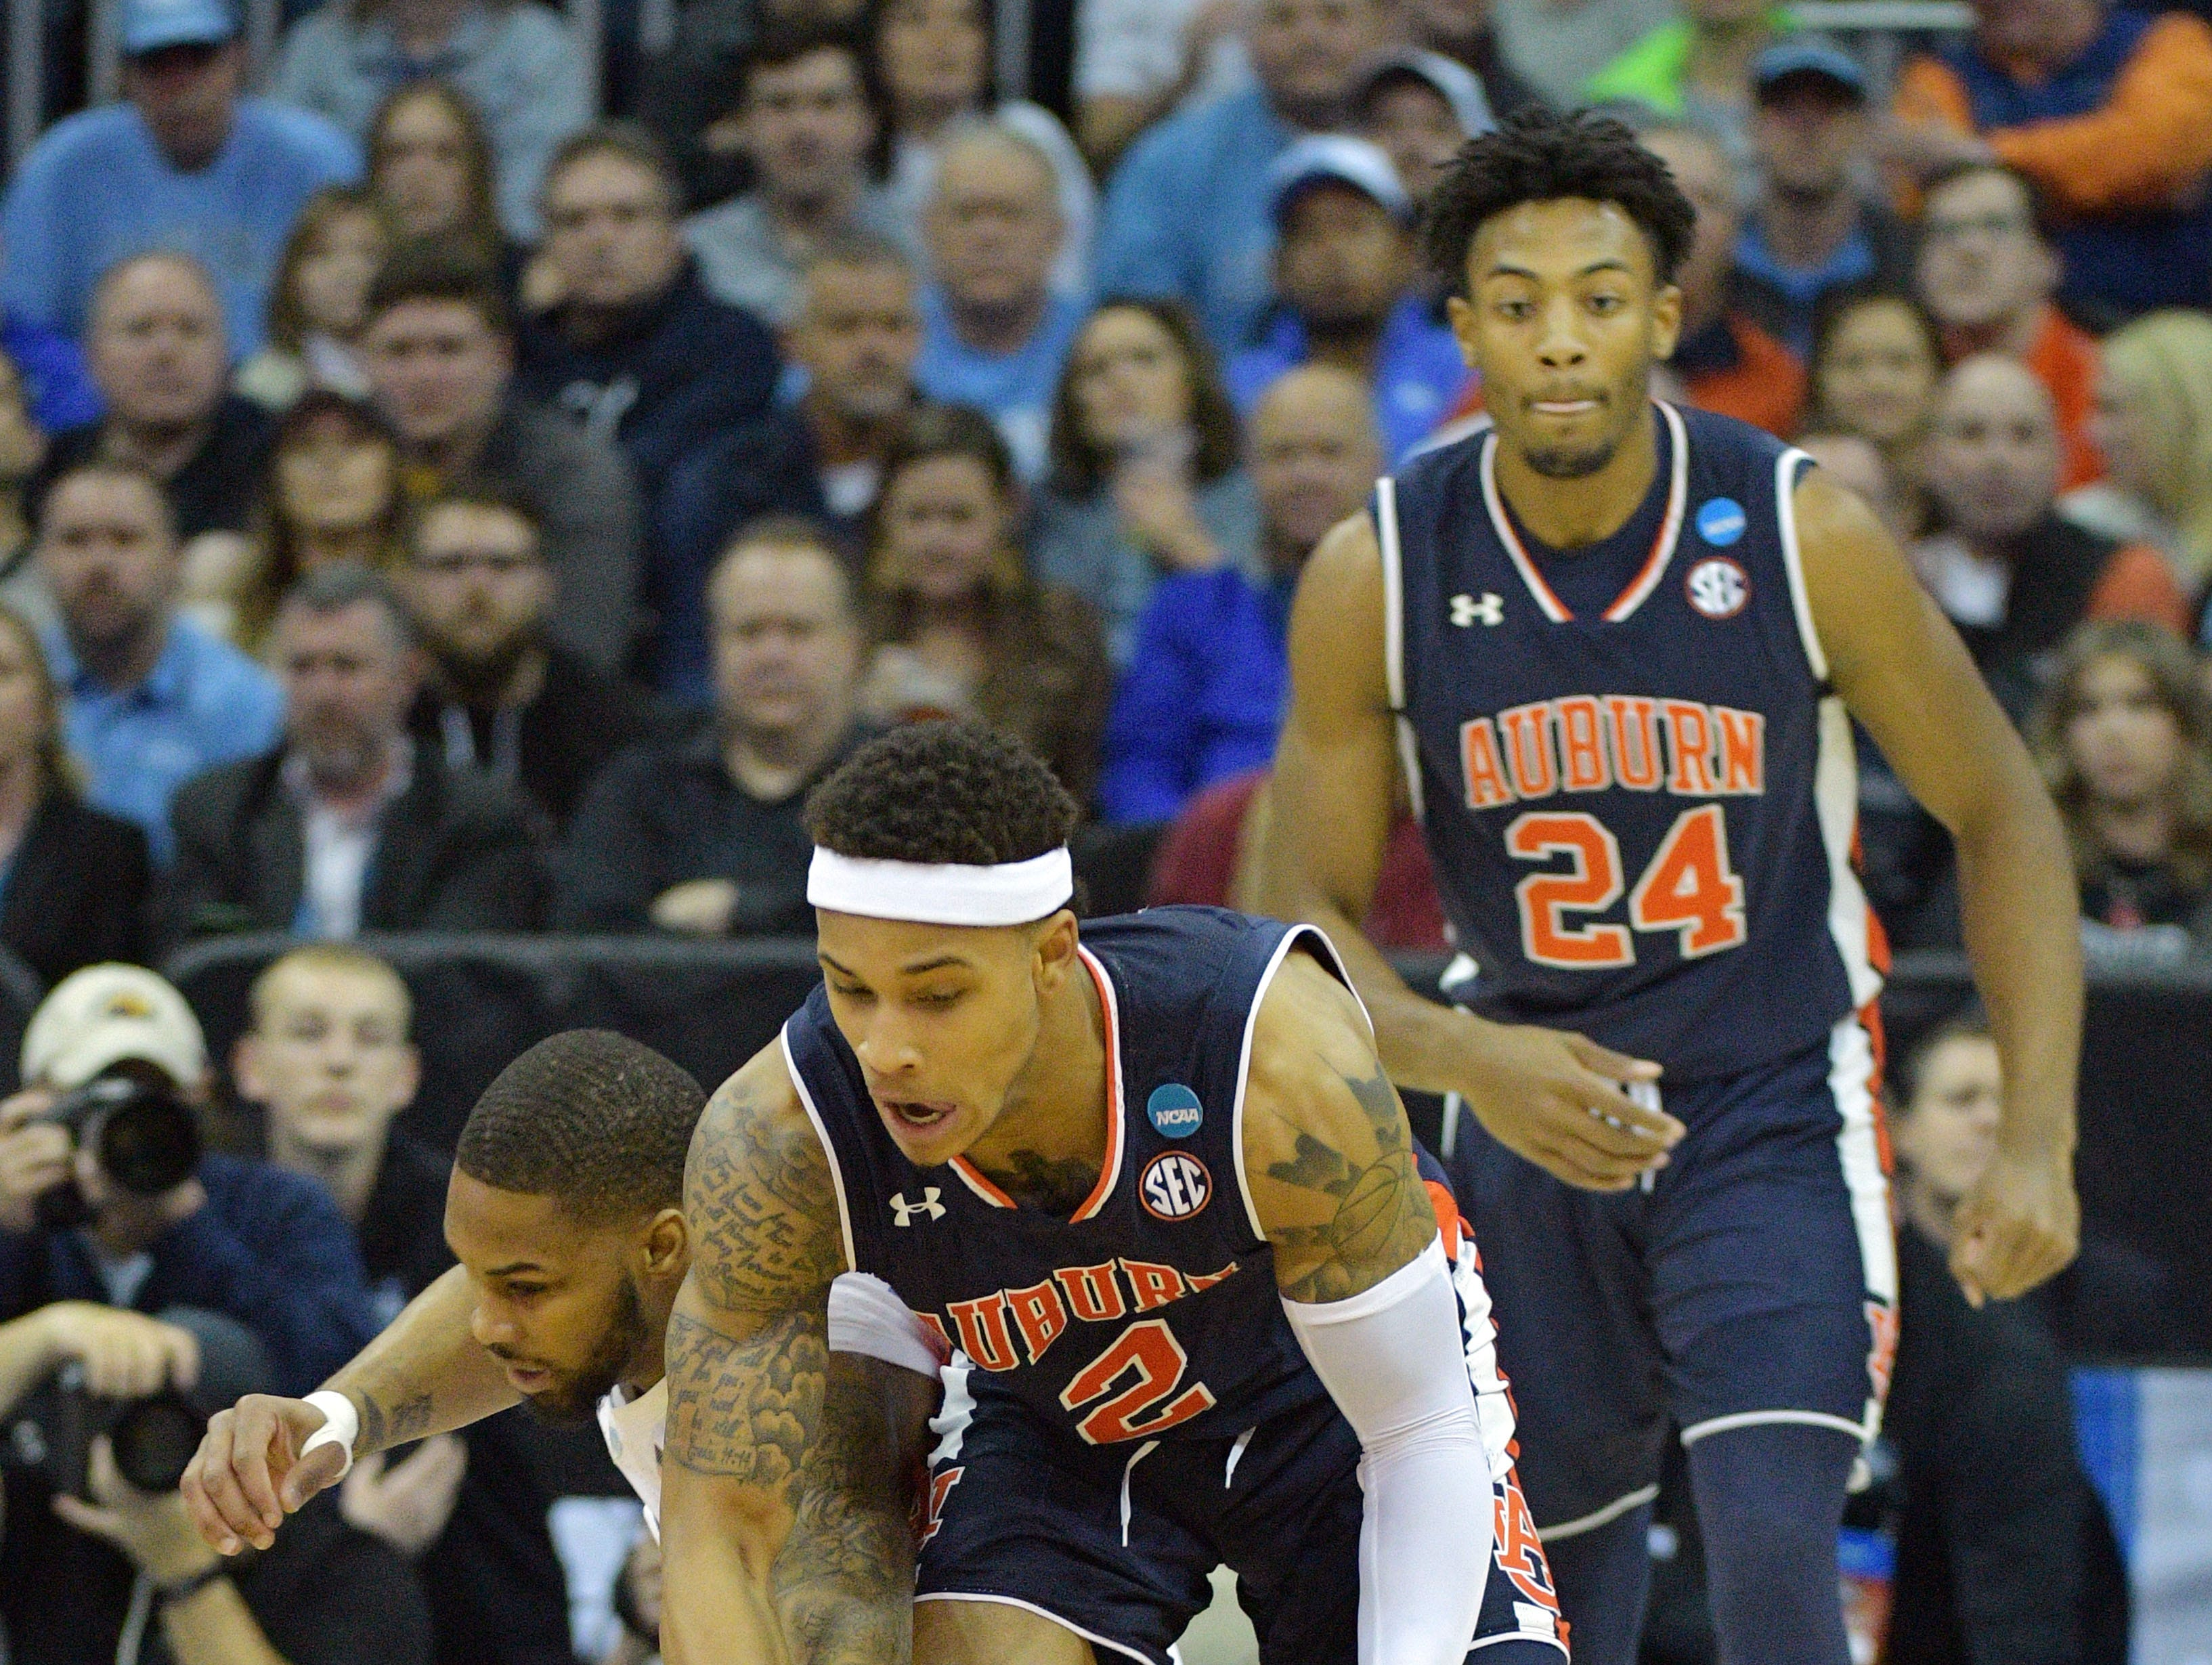 Mar 29, 2019; Kansas City, MO, United States; Auburn Tigers guard Bryce Brown (2) battles for a loose ball with North Carolina Tar Heels guard Seventh Woods (0) during the first half in the semifinals of the midwest regional of the 2019 NCAA Tournament at Sprint Center. Mandatory Credit: Denny Medley-USA TODAY Sports